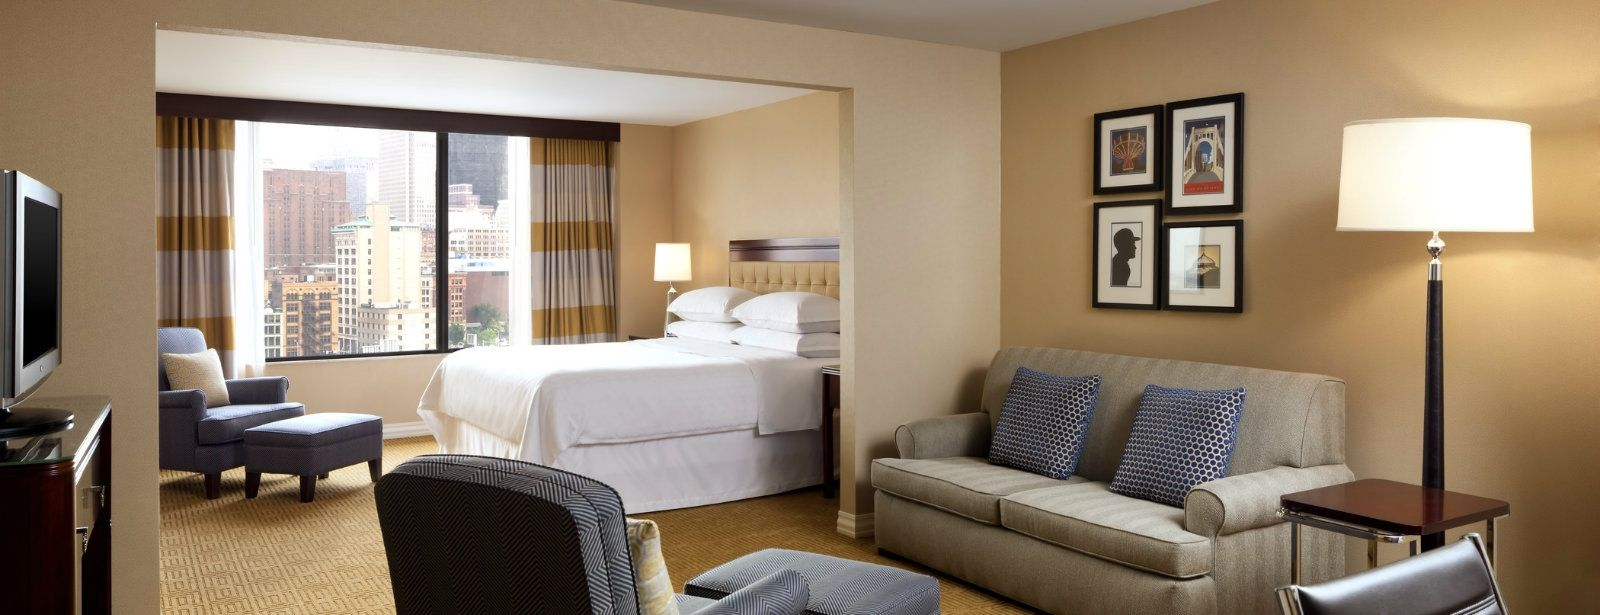 Junior Suite | Sheraton Station Square Hotel